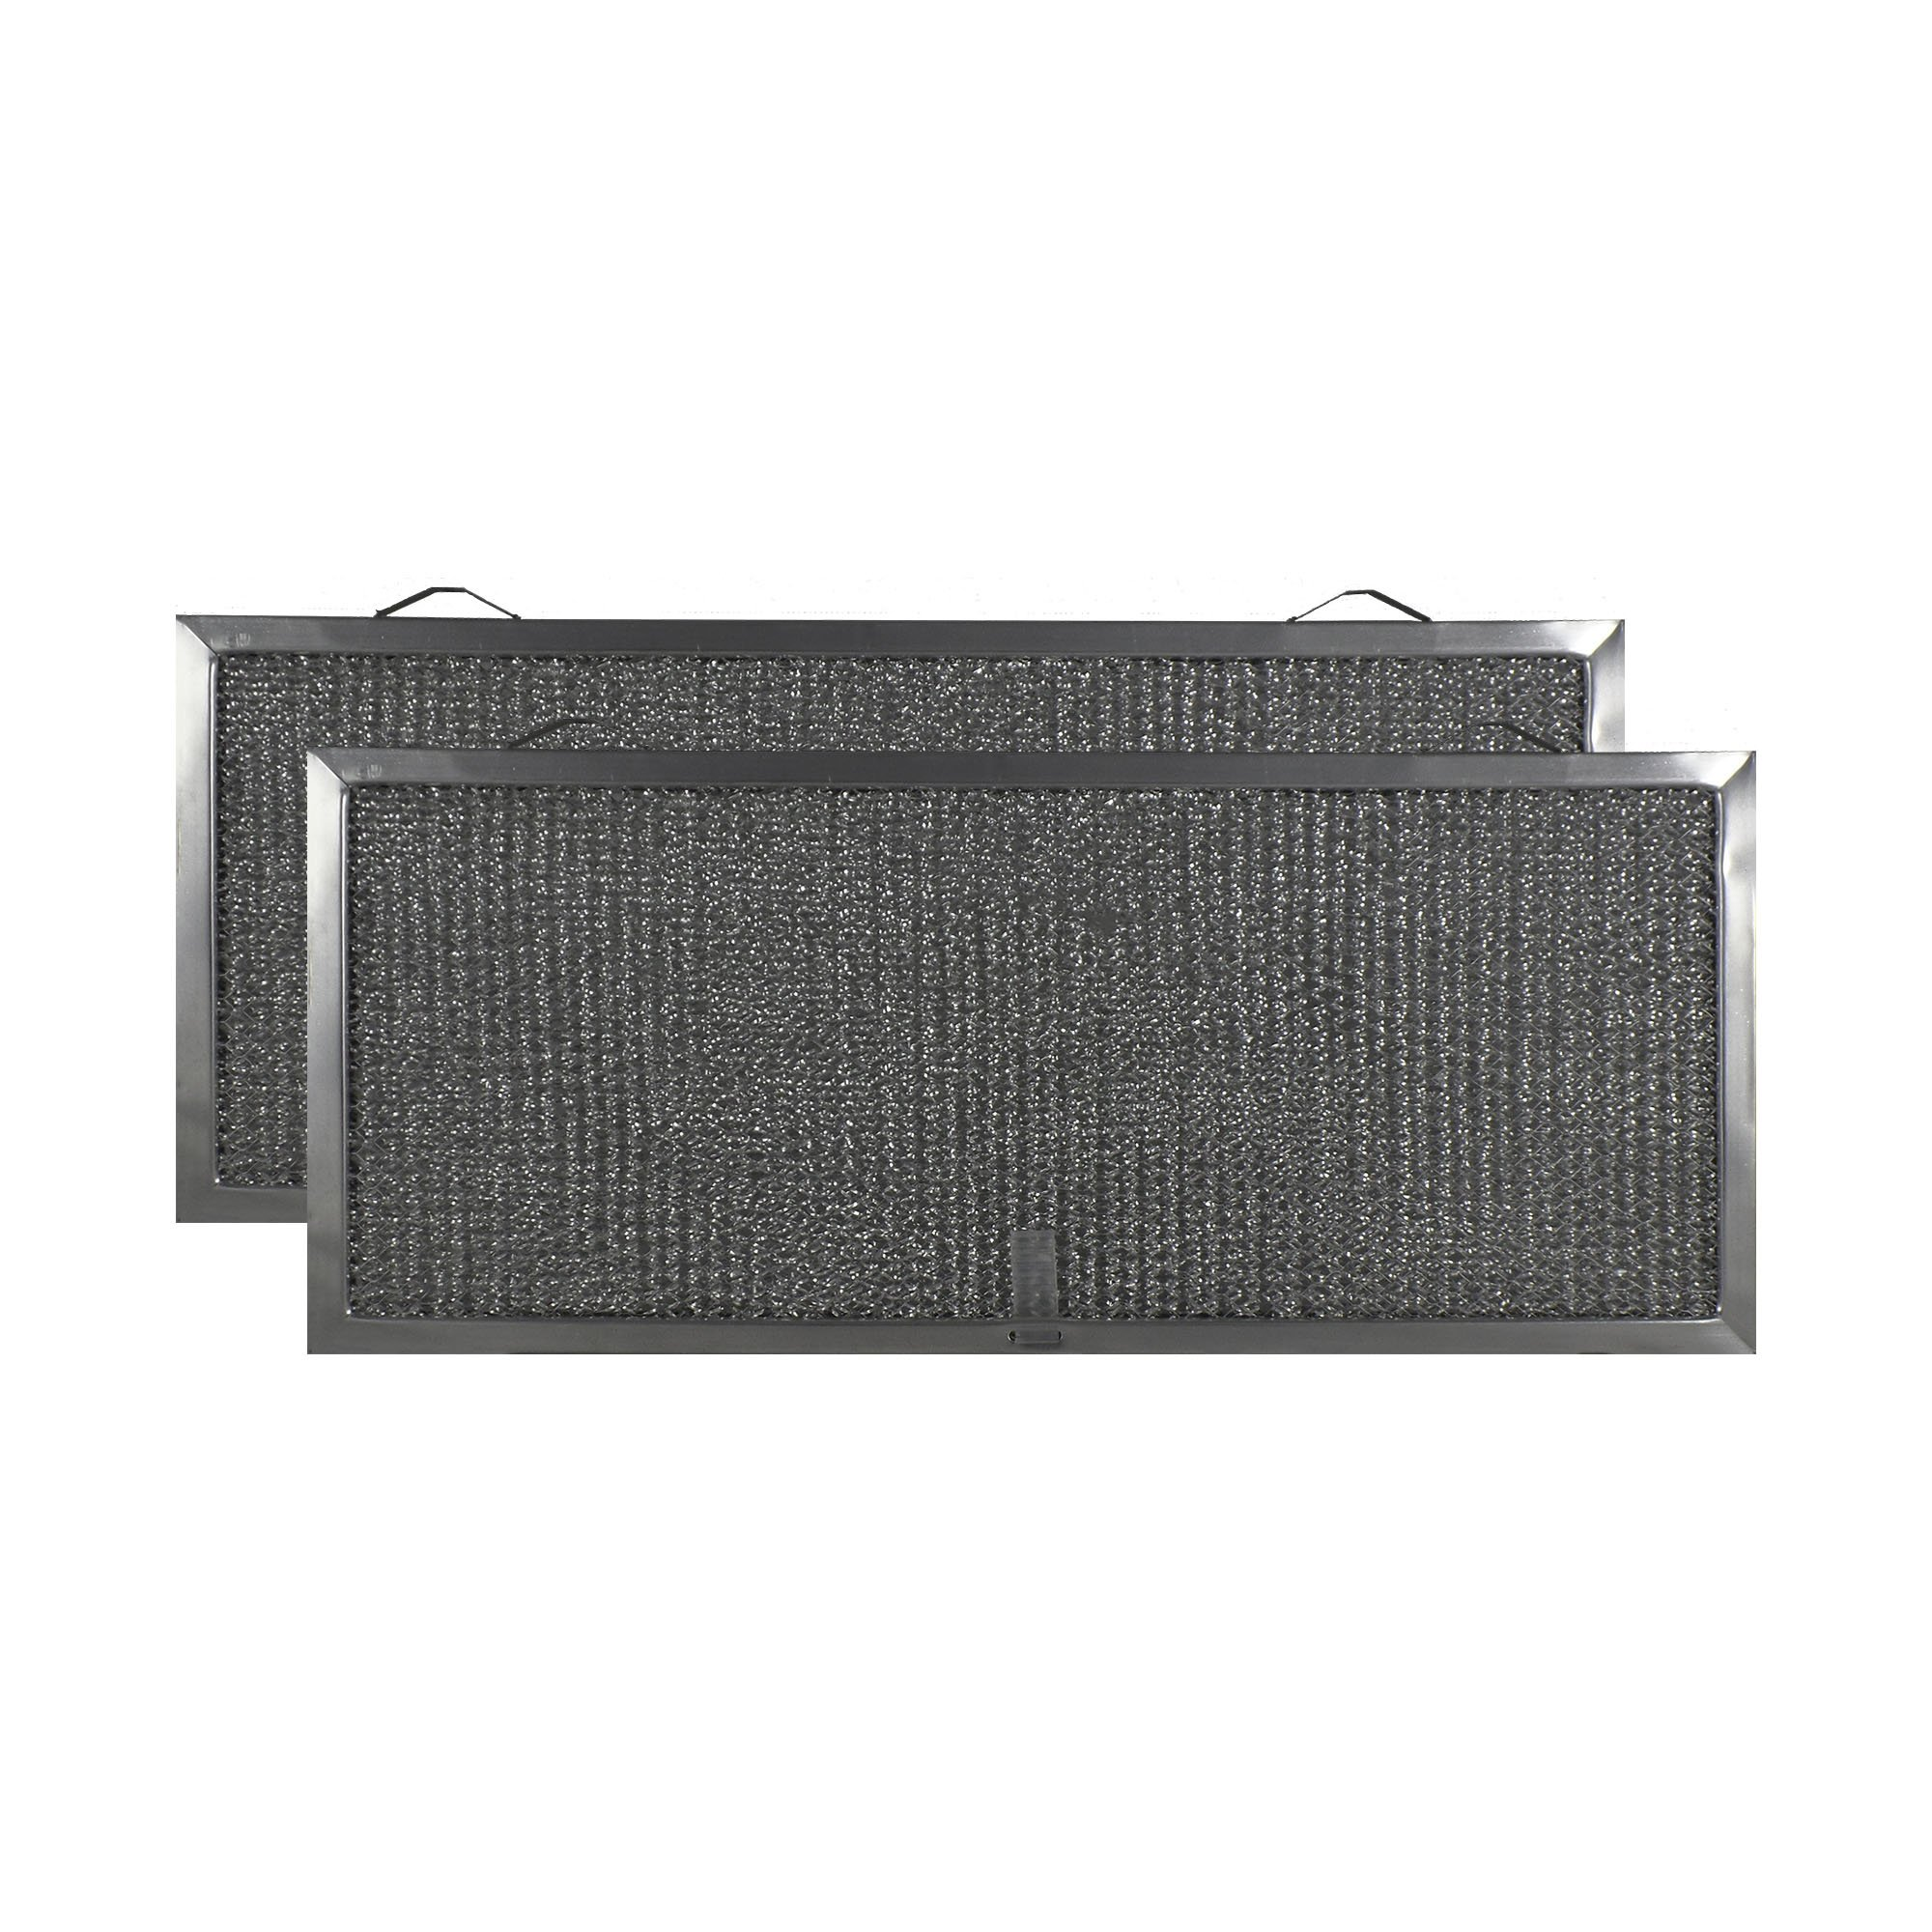 2-PACK Air Filter Factory 7 X 16-1/2 X 3/8 Range Hood Aluminum Grease Filters AFF185-M